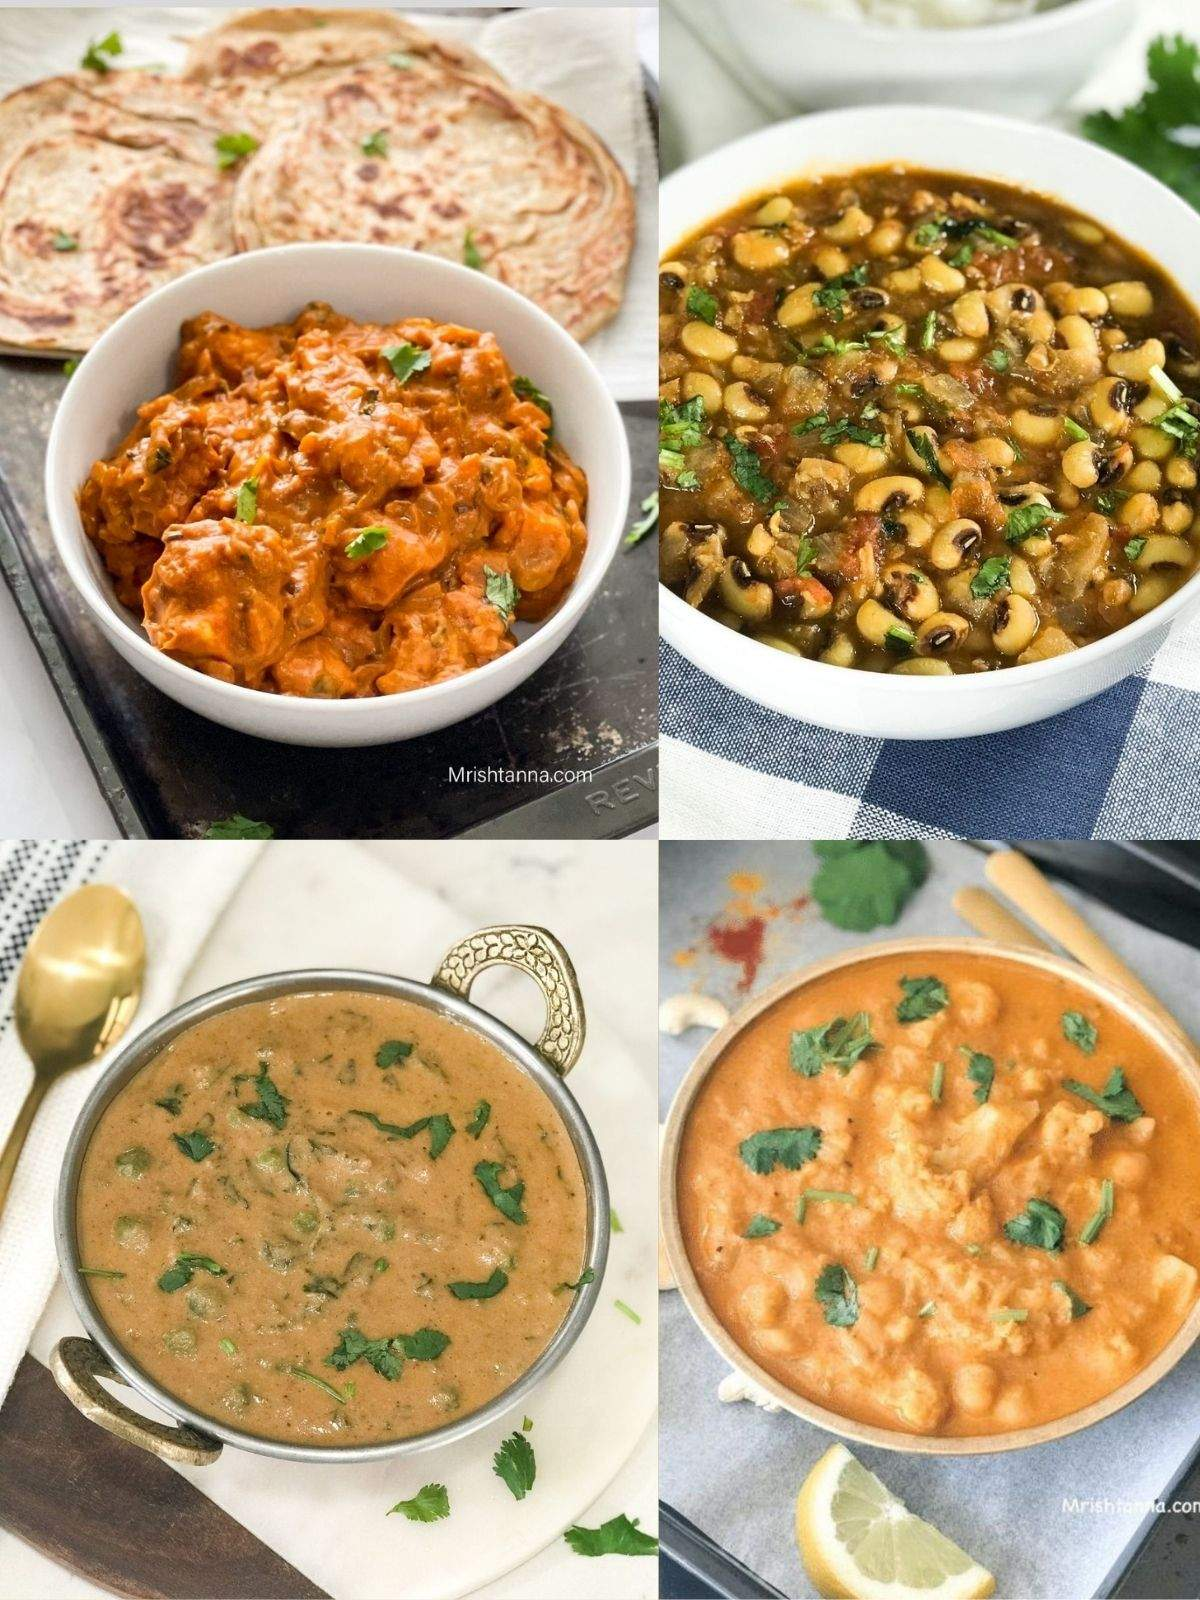 Four bowls are filled with curries for chapati